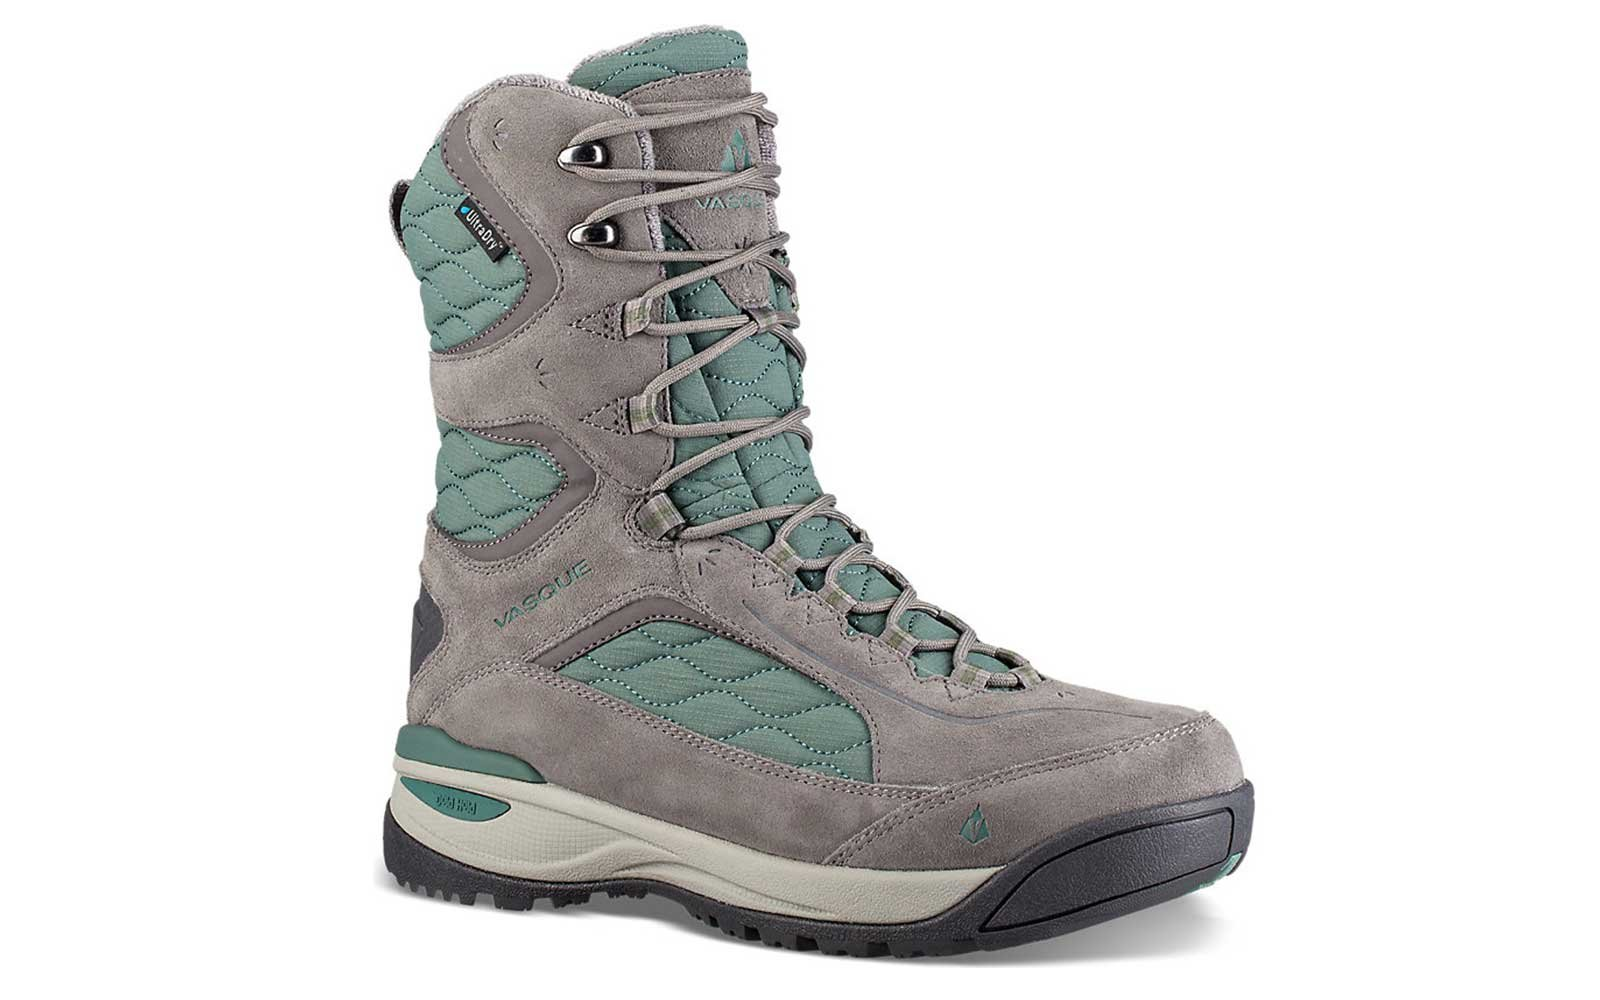 0f687cf85b85 Best for  Winter Wandering. Vasque Pow Pow III Hiking Boot